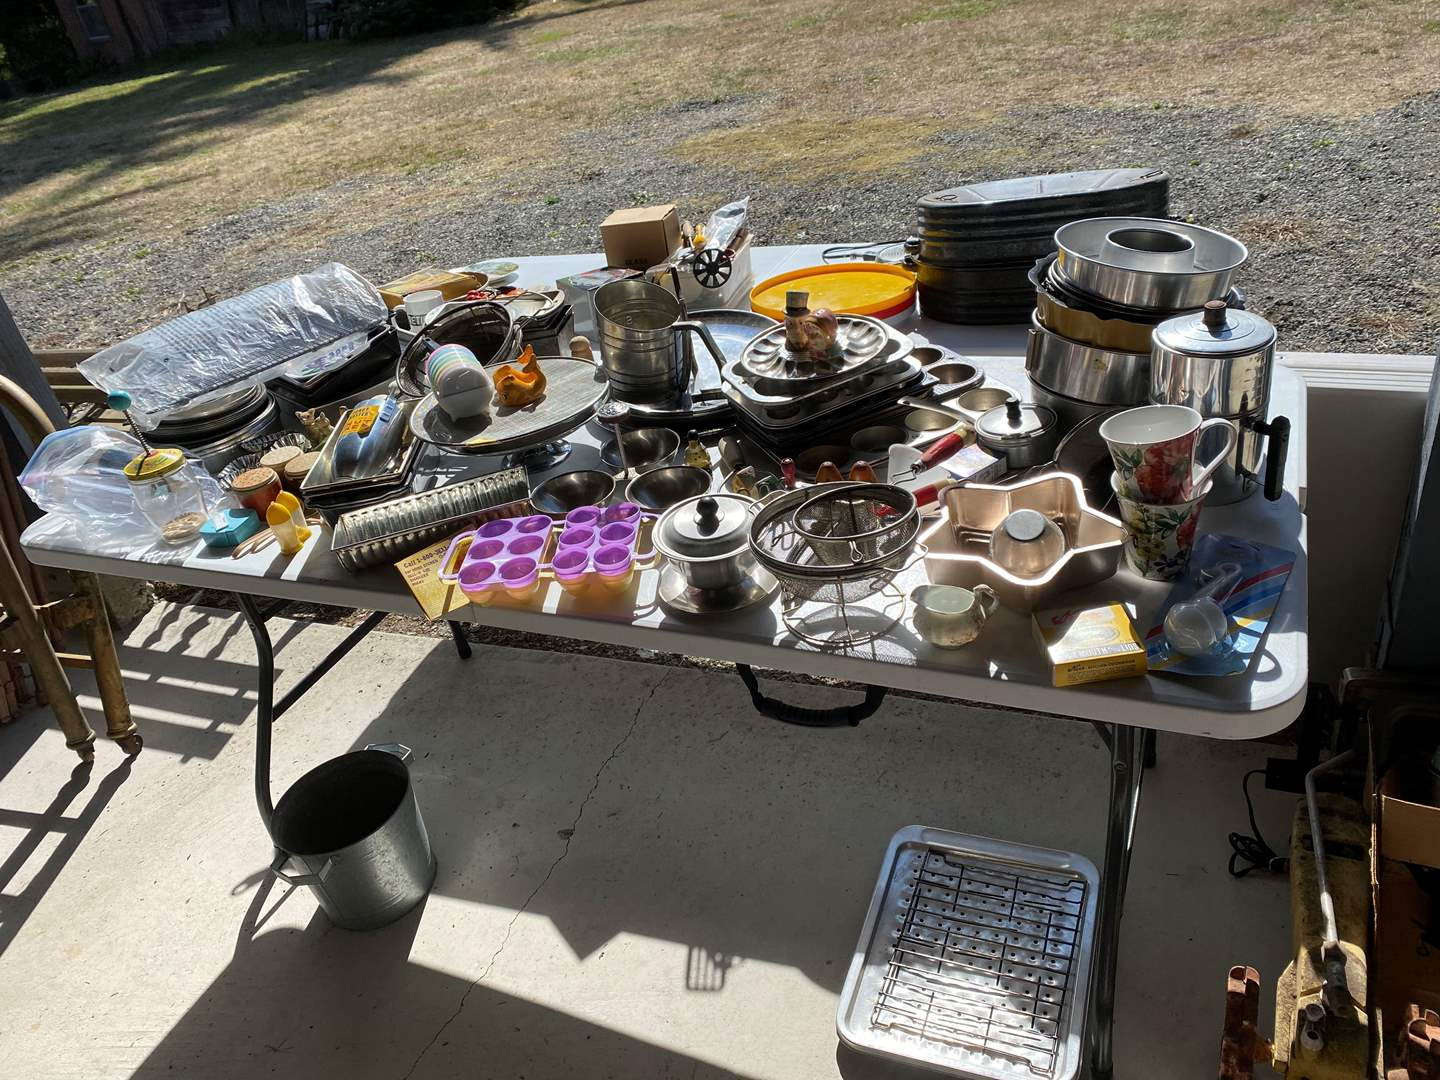 Lot # 267 - Misc. Selection of Kitchen Items: Baking Dishes, Salt & Pepper Shakers, Some Tupperware, Roasting Pans & More.. (main image)